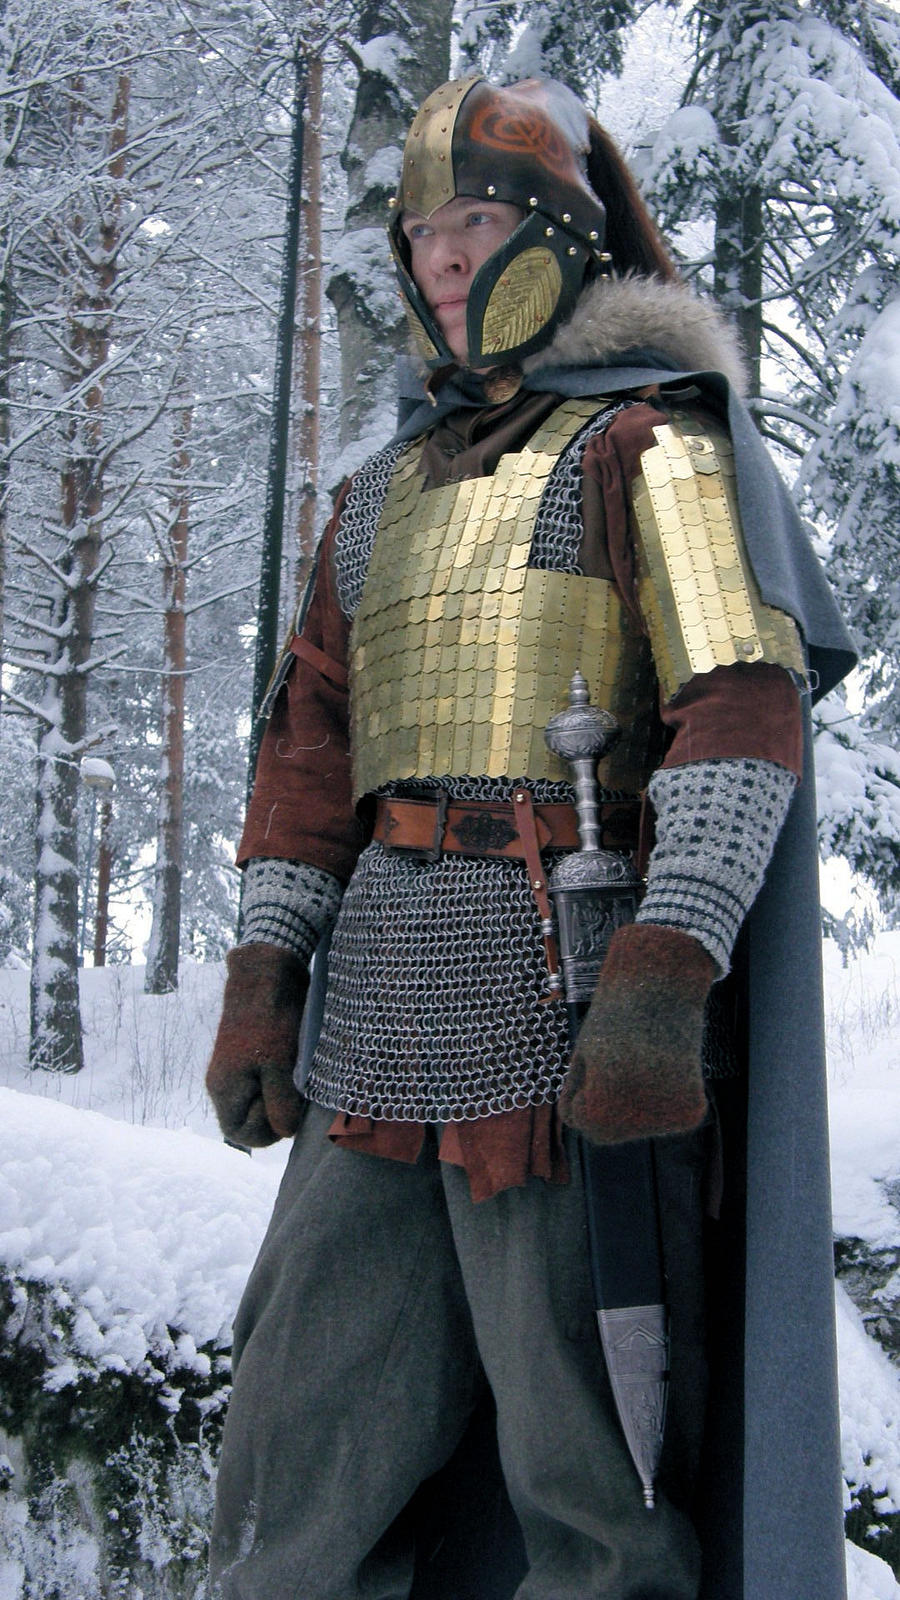 pseudo-medieval costume by Lathron